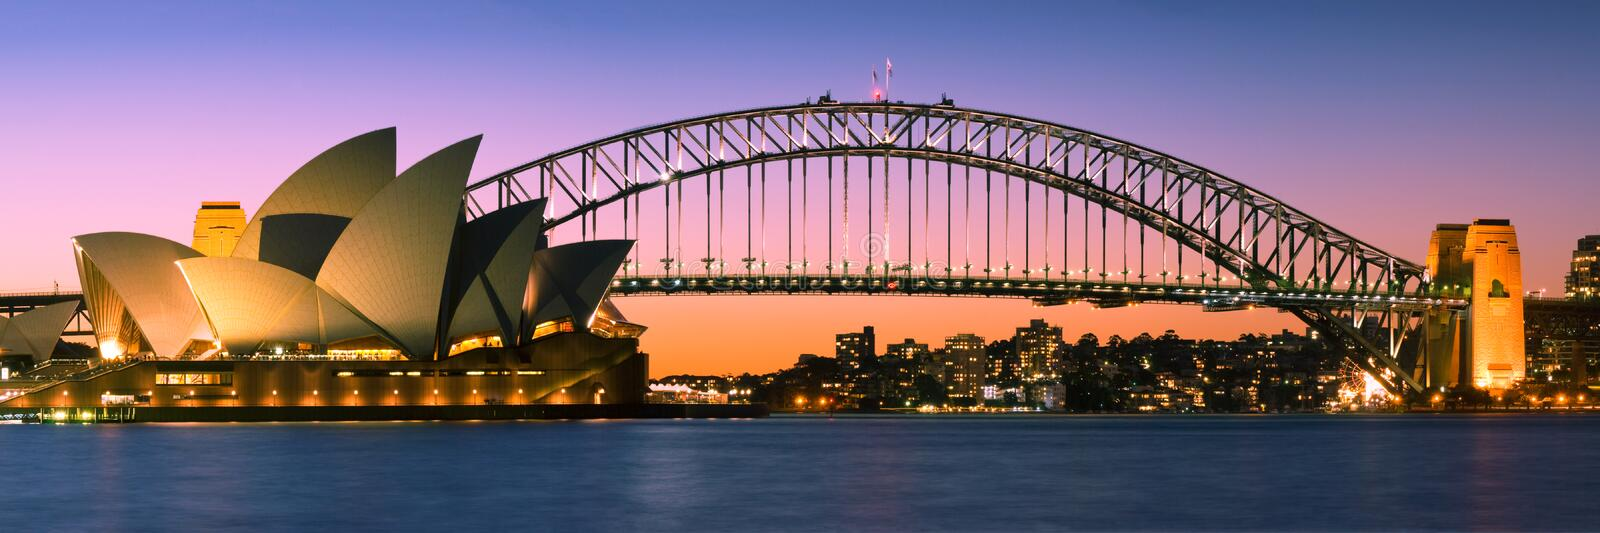 Sydney Harbour Skyline Panorama At Twilight royalty free stock image